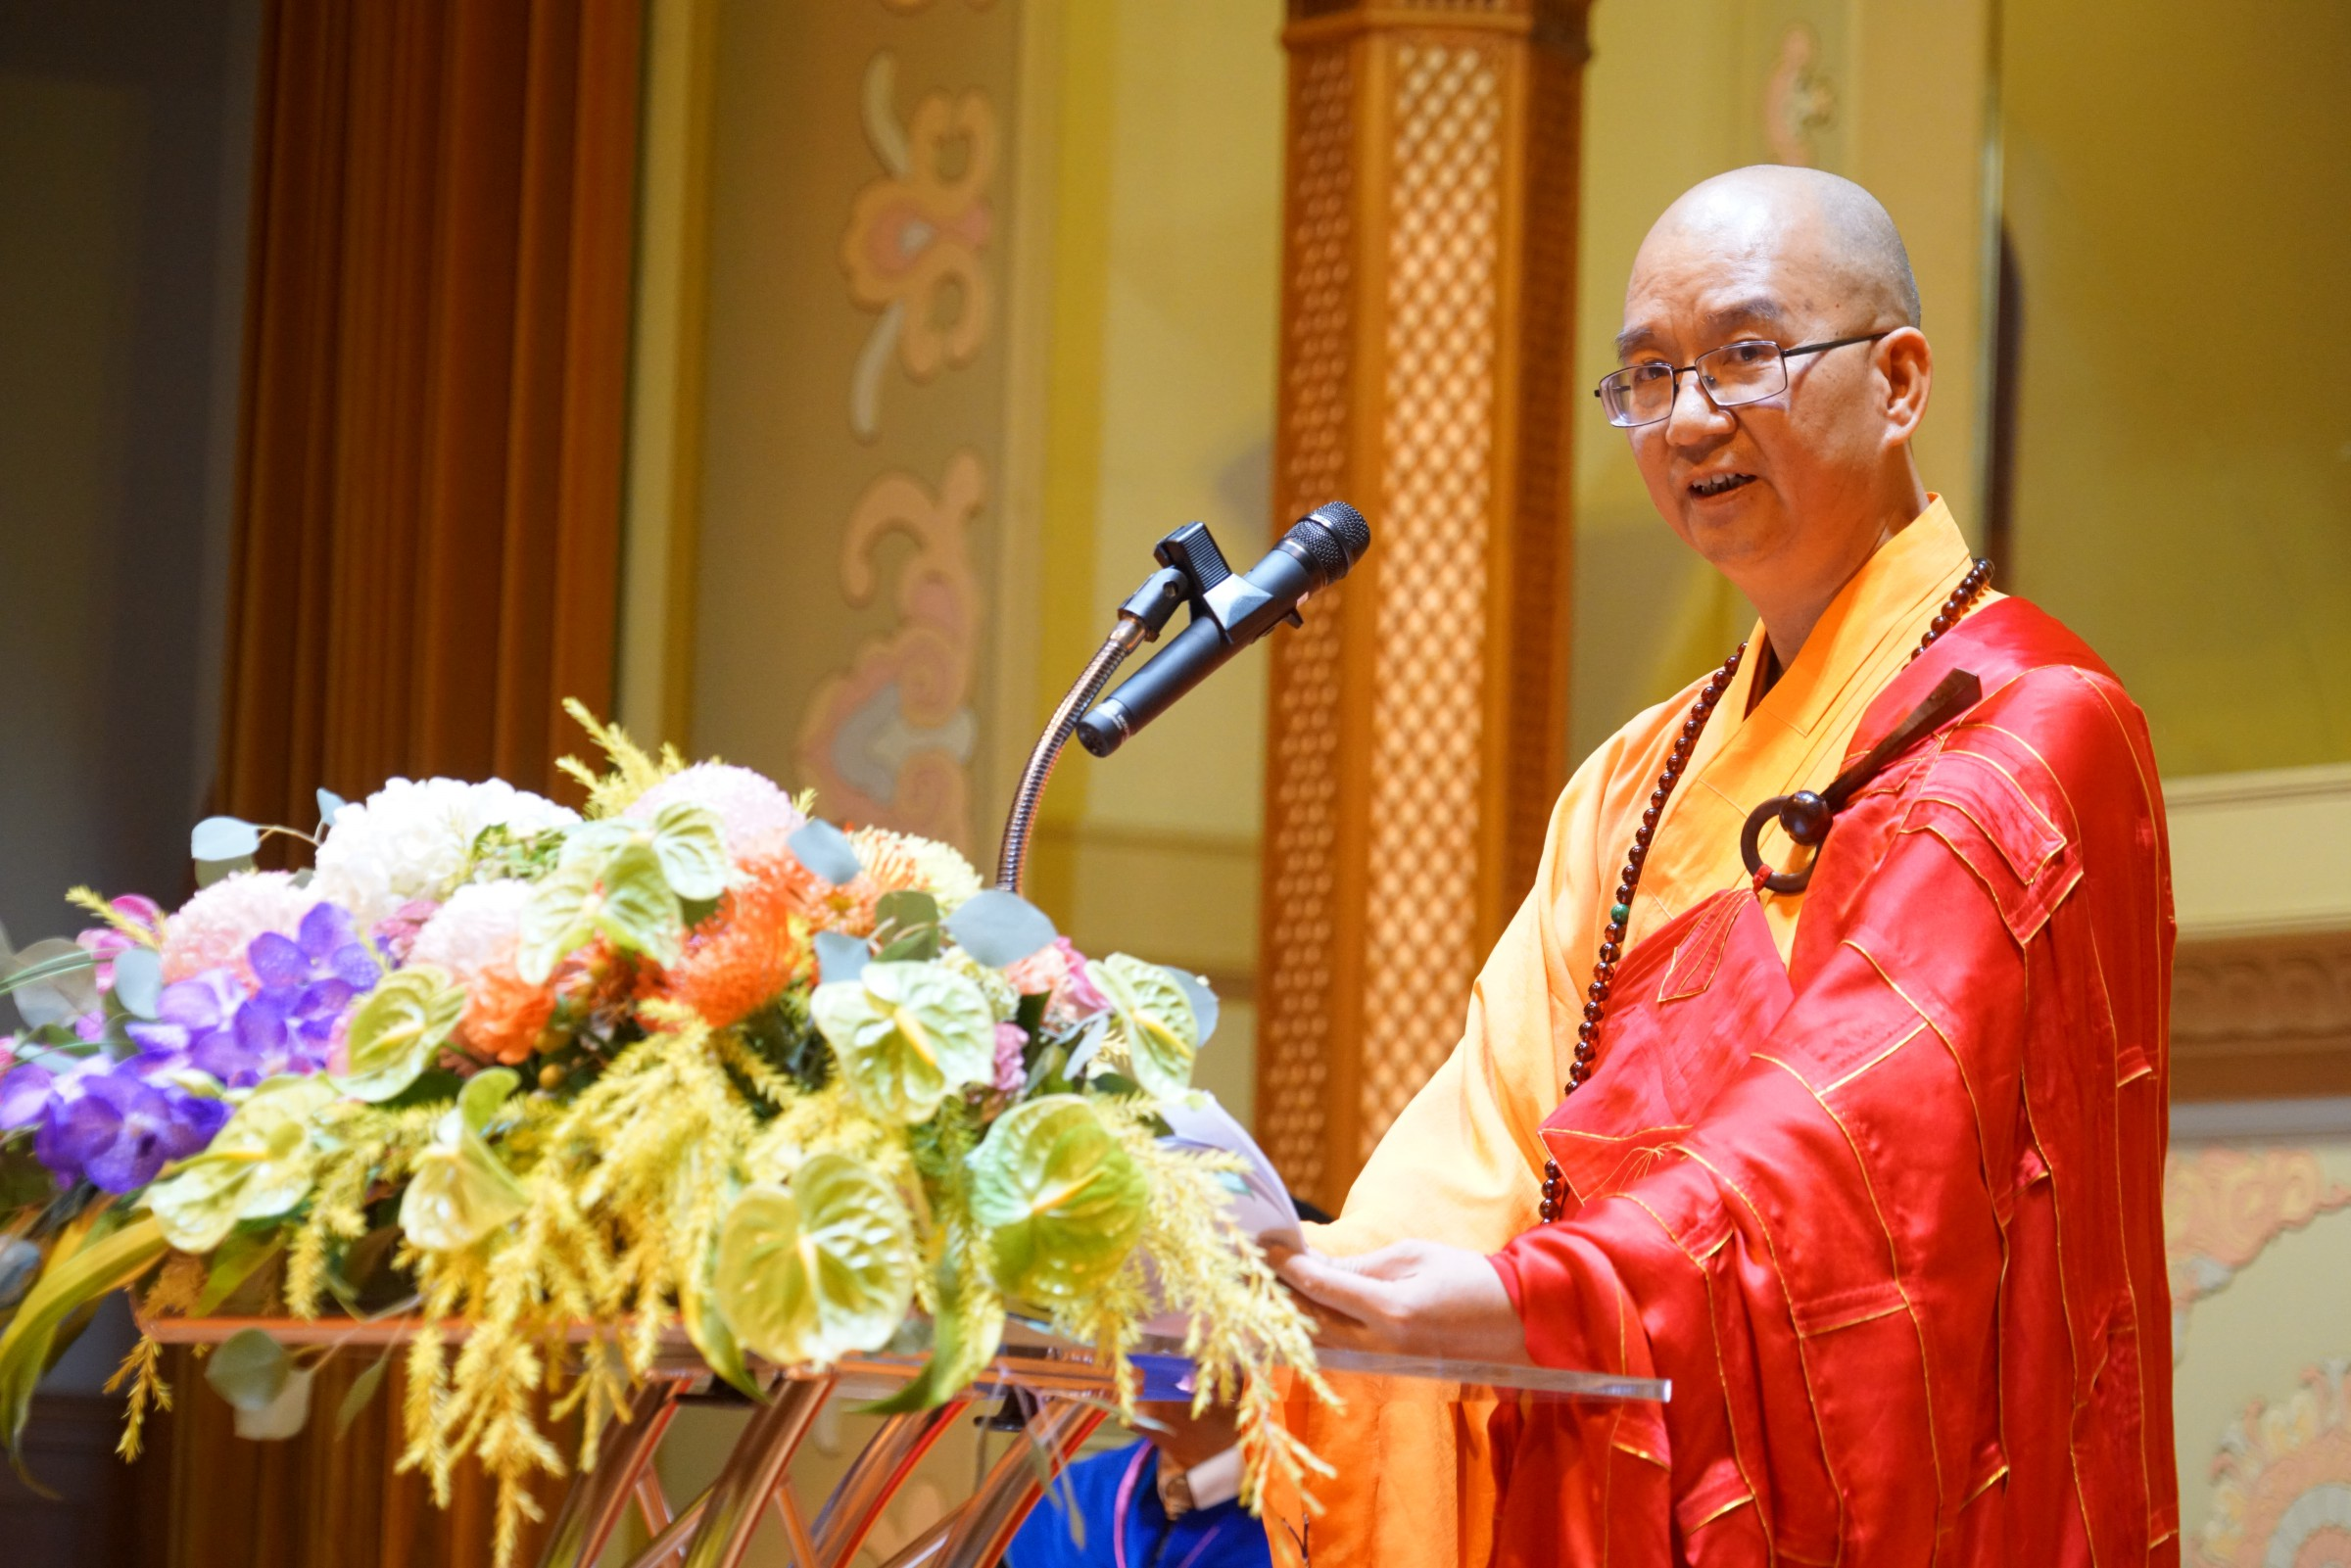 Venerable Master Xuecheng in Kaohsiung, Taiwan on Sept.12, 2017.